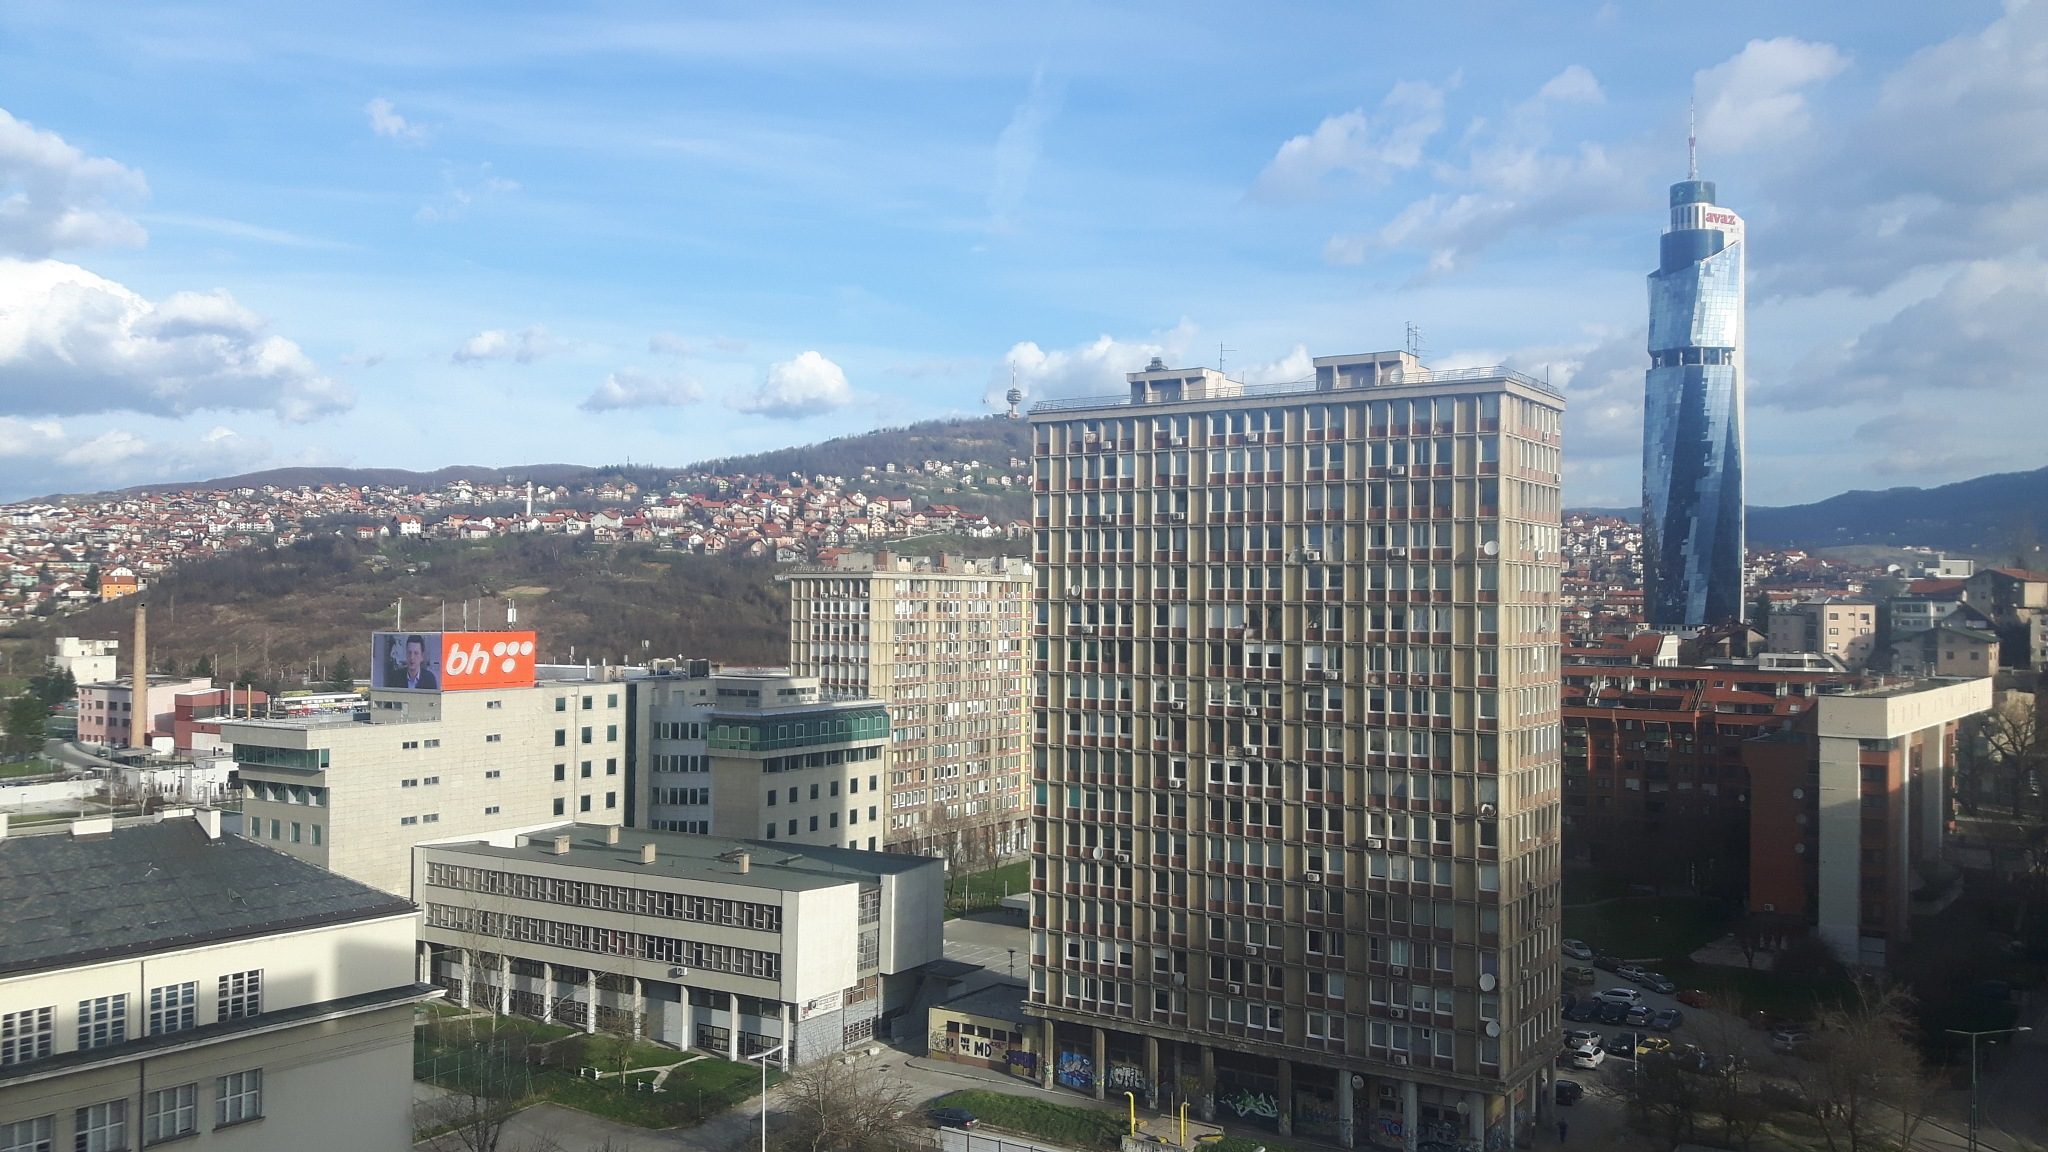 Sarajevo Saturday morning by Mevludin_Hasanovic